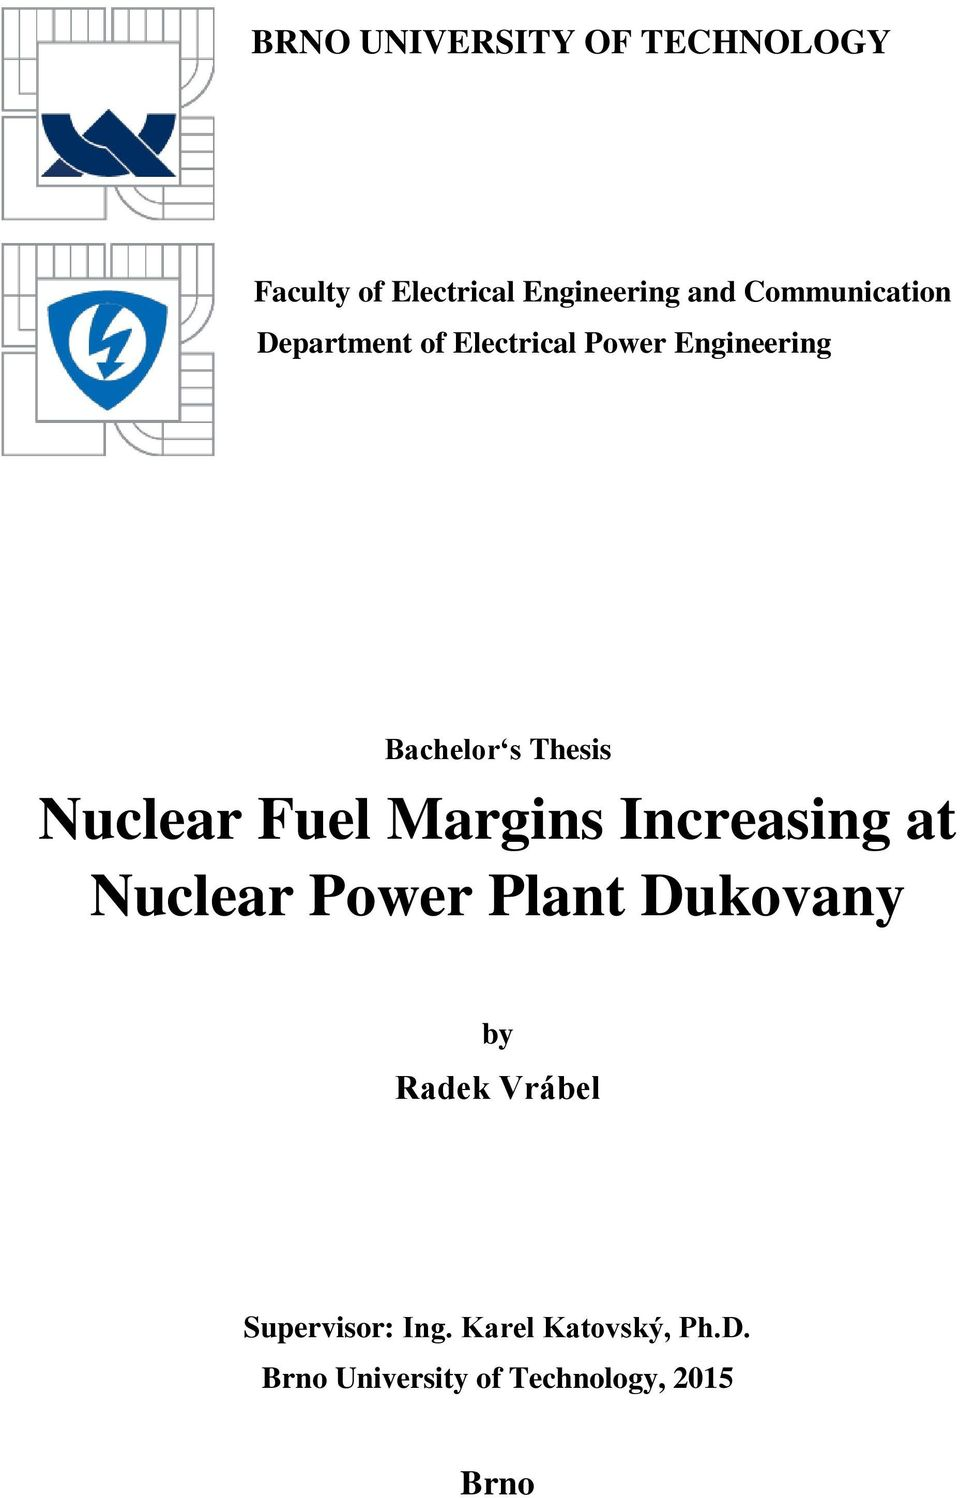 Nuclear Fuel Margins Increasing at Nuclear Power Plant Dukovany by Radek